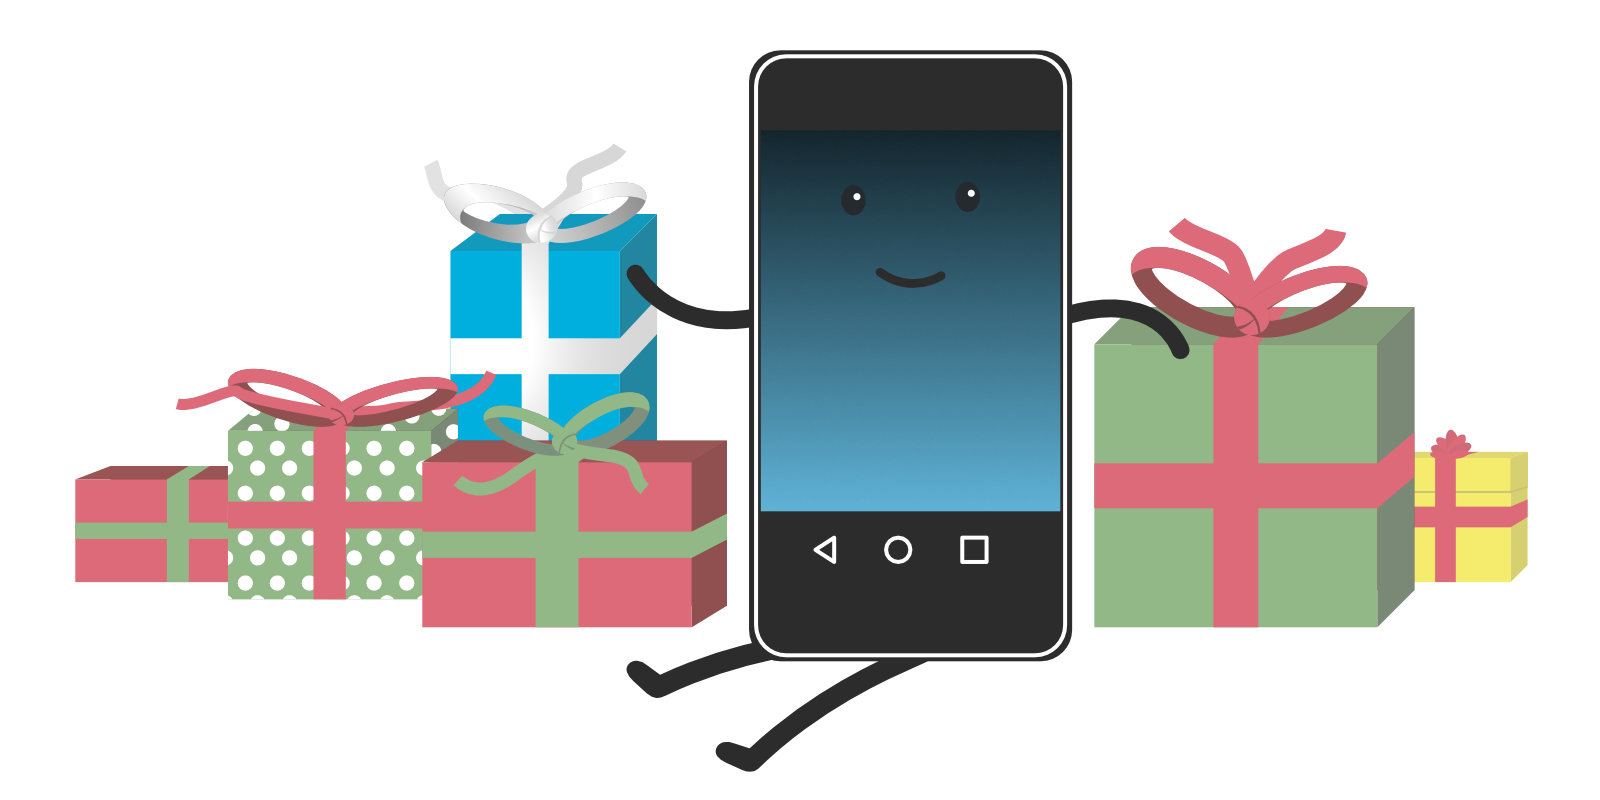 Cool Tech Gifts For Christmas - Protect Your Gadget Blog